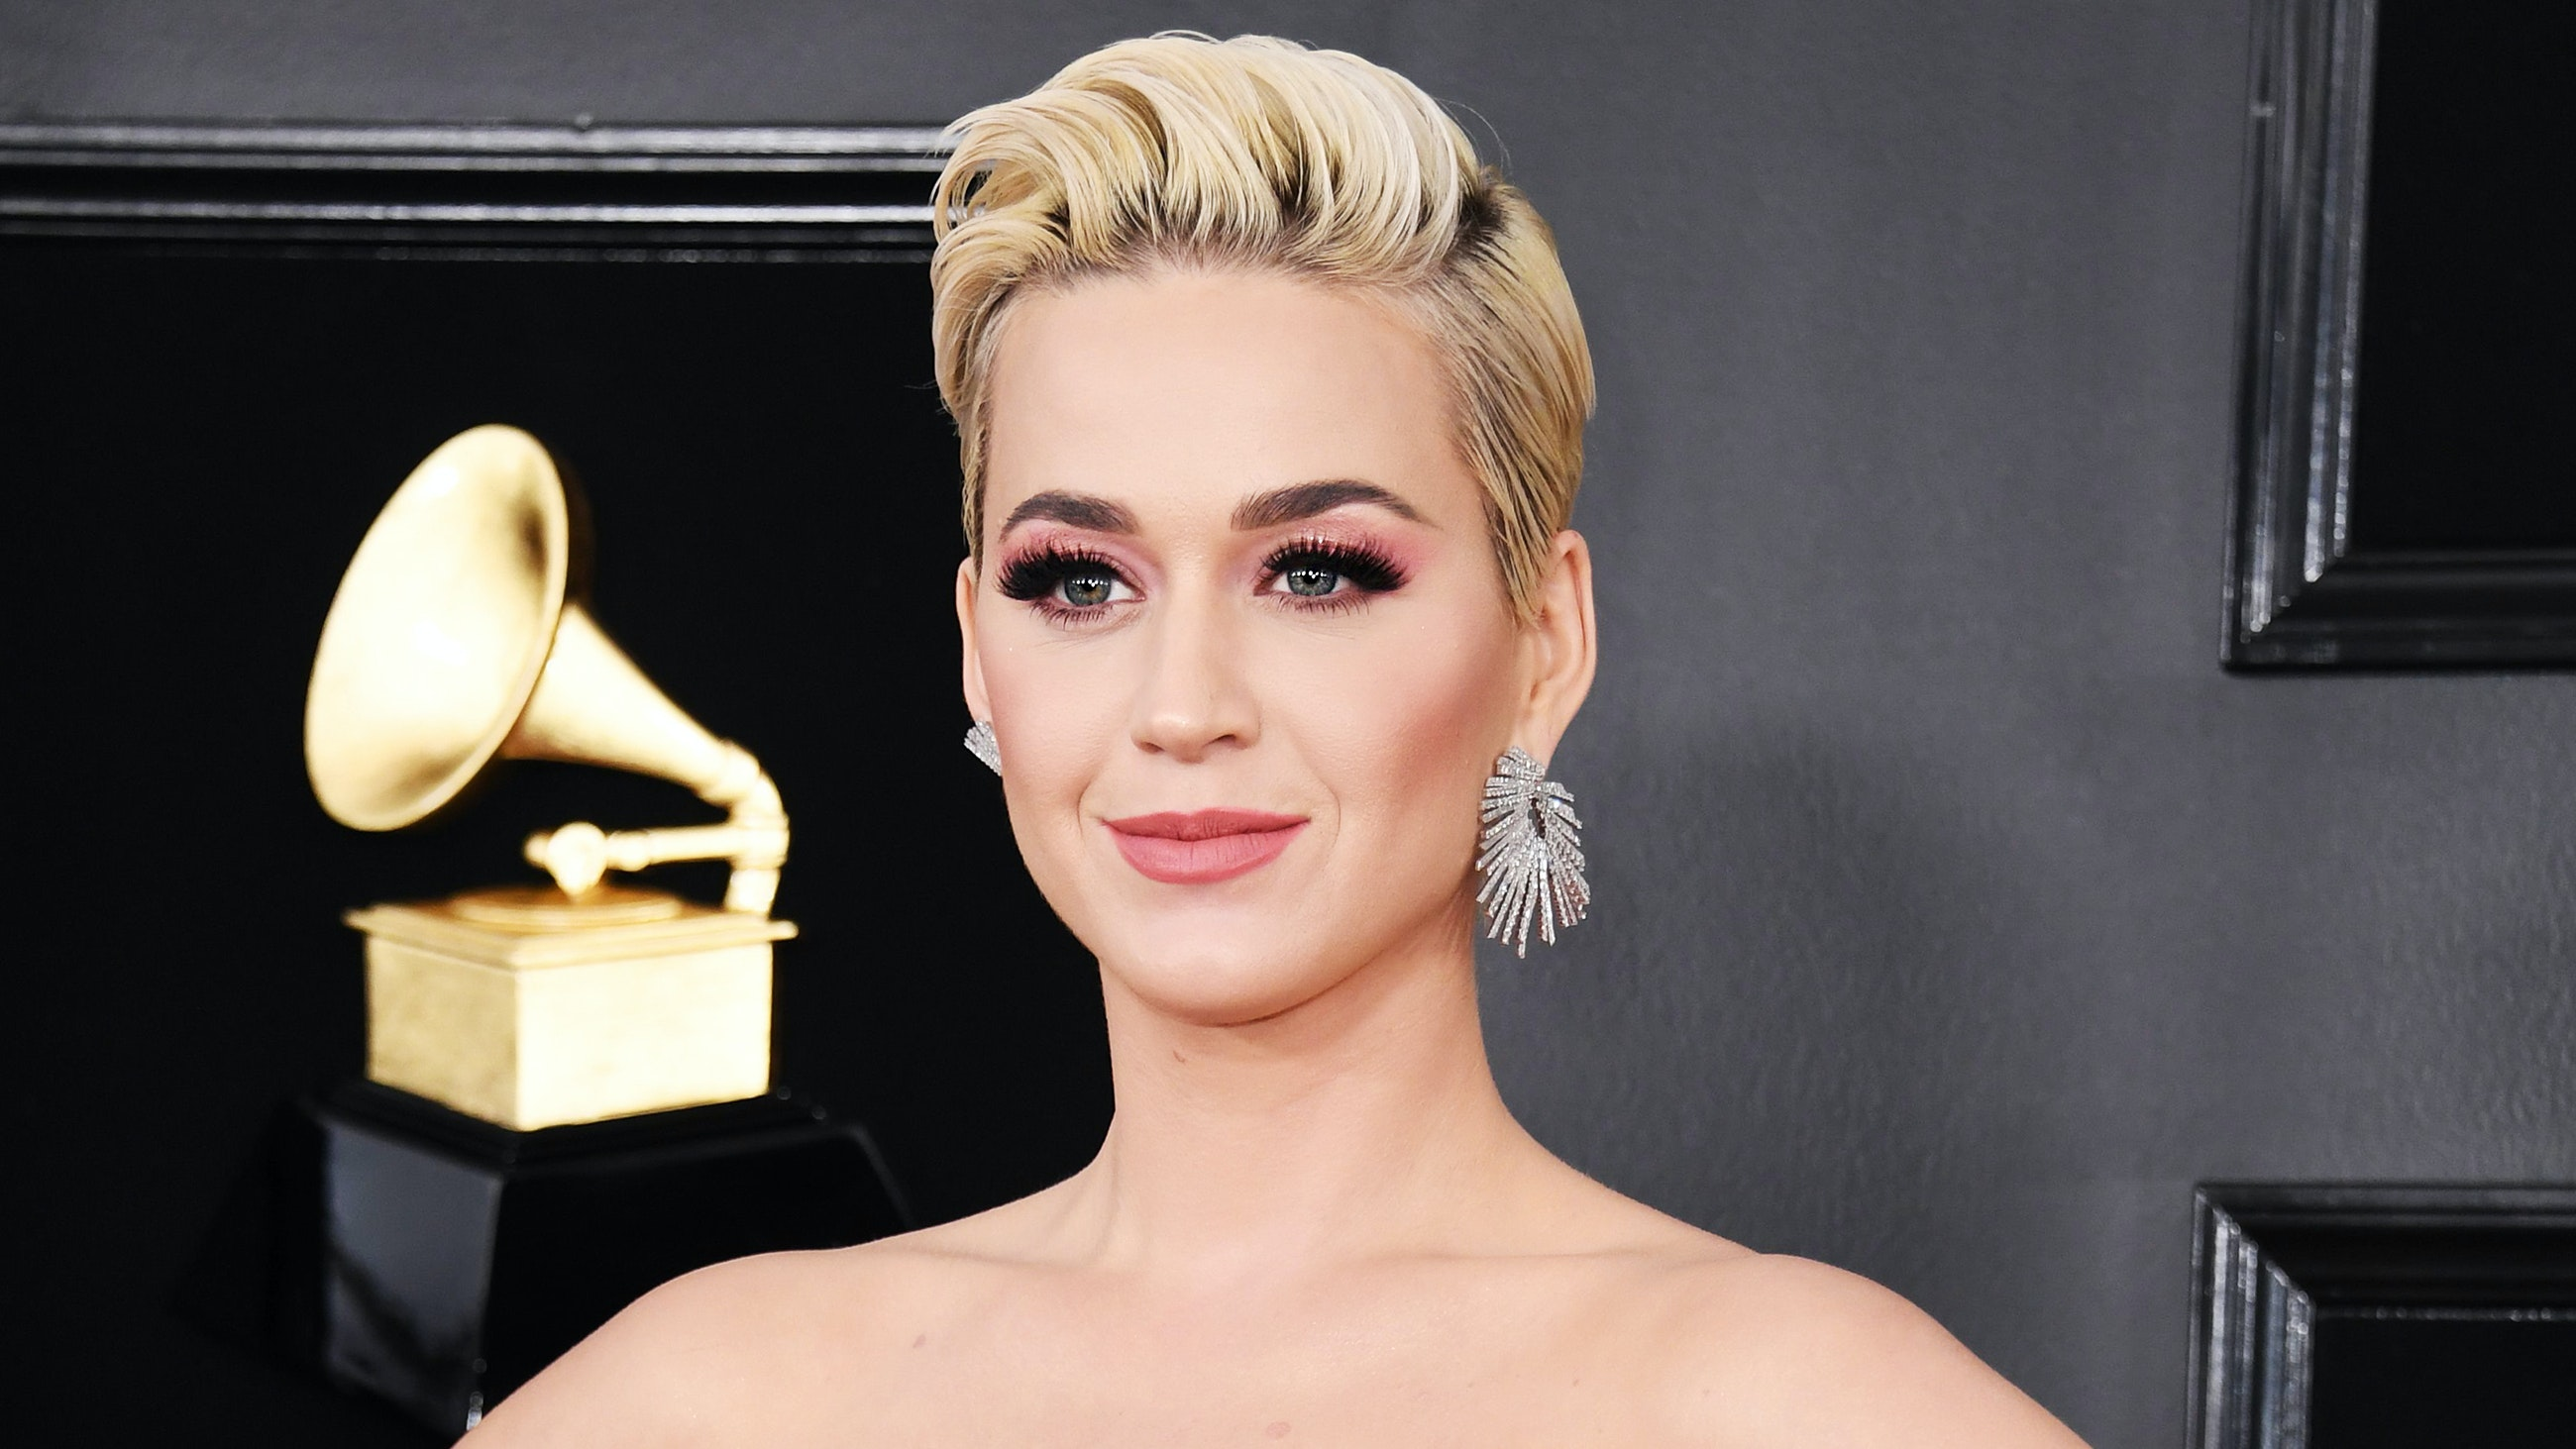 f20960623d6 Exclusive: Katy Perry's Esthetician Shares the Secret Massage Technique  Behind Her GRAMMYs Glow